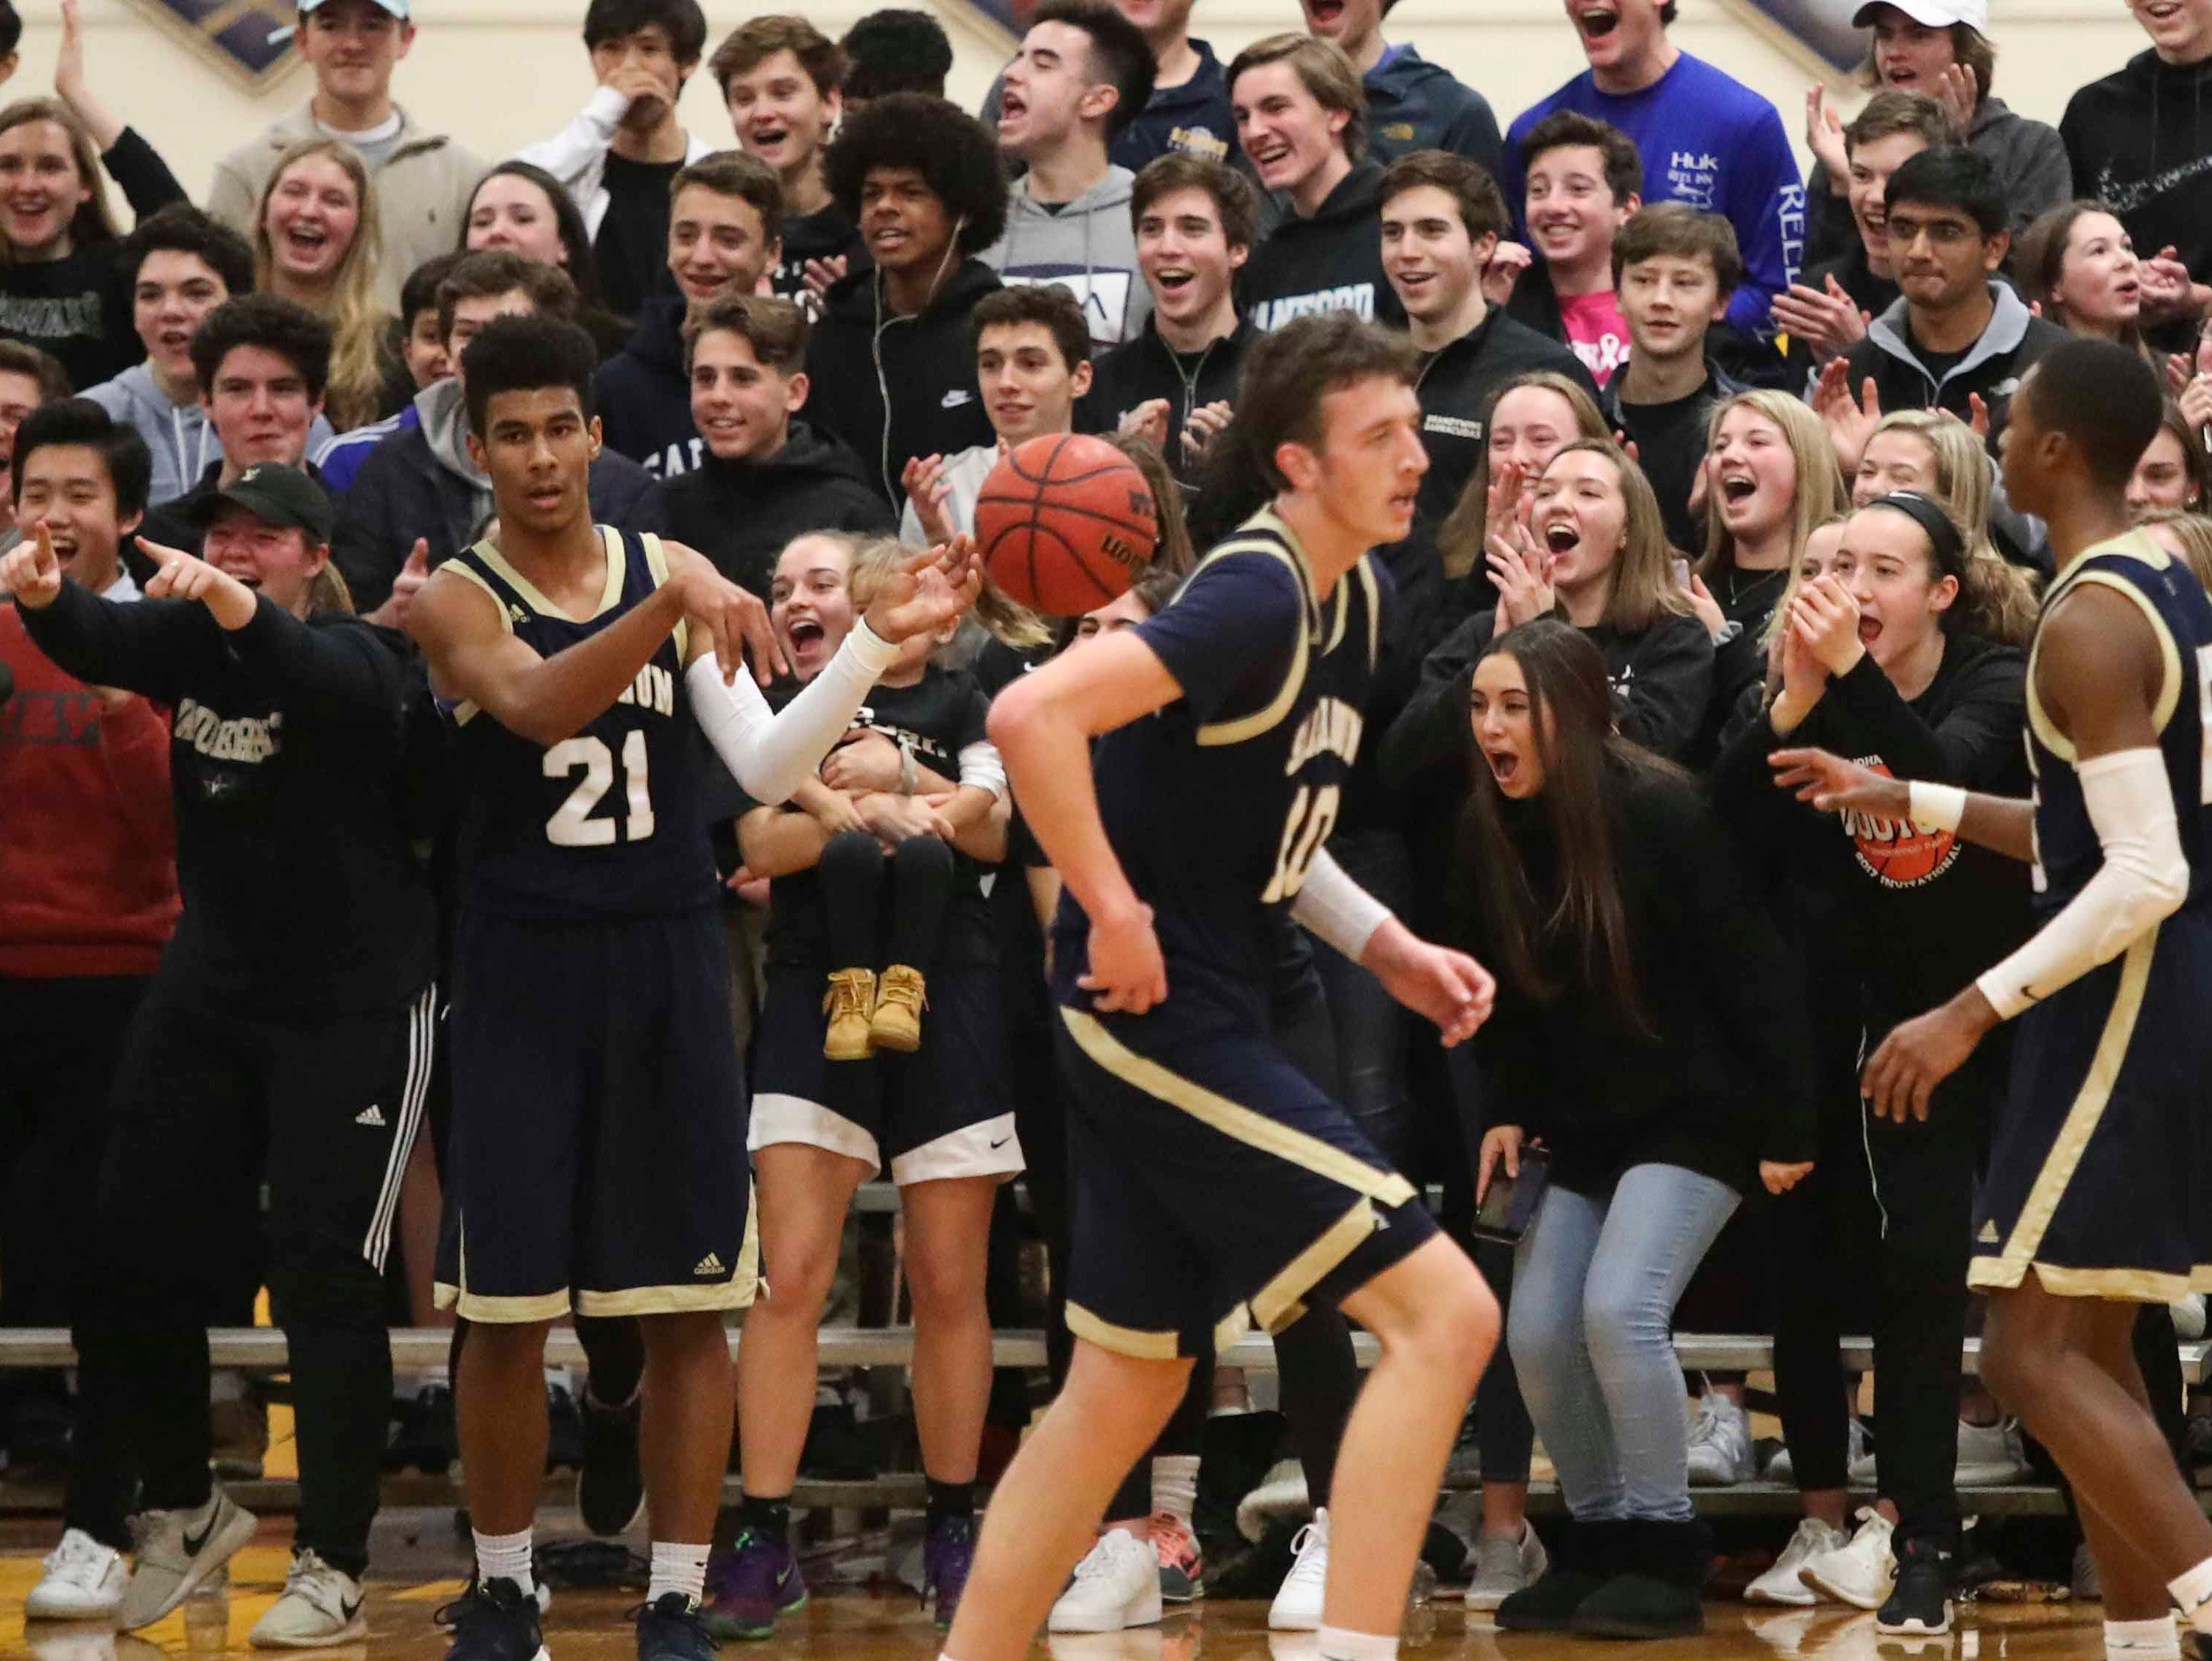 The Sanford students enjoy one of many slams by the home team during the Warriors' 65-47 win Friday.